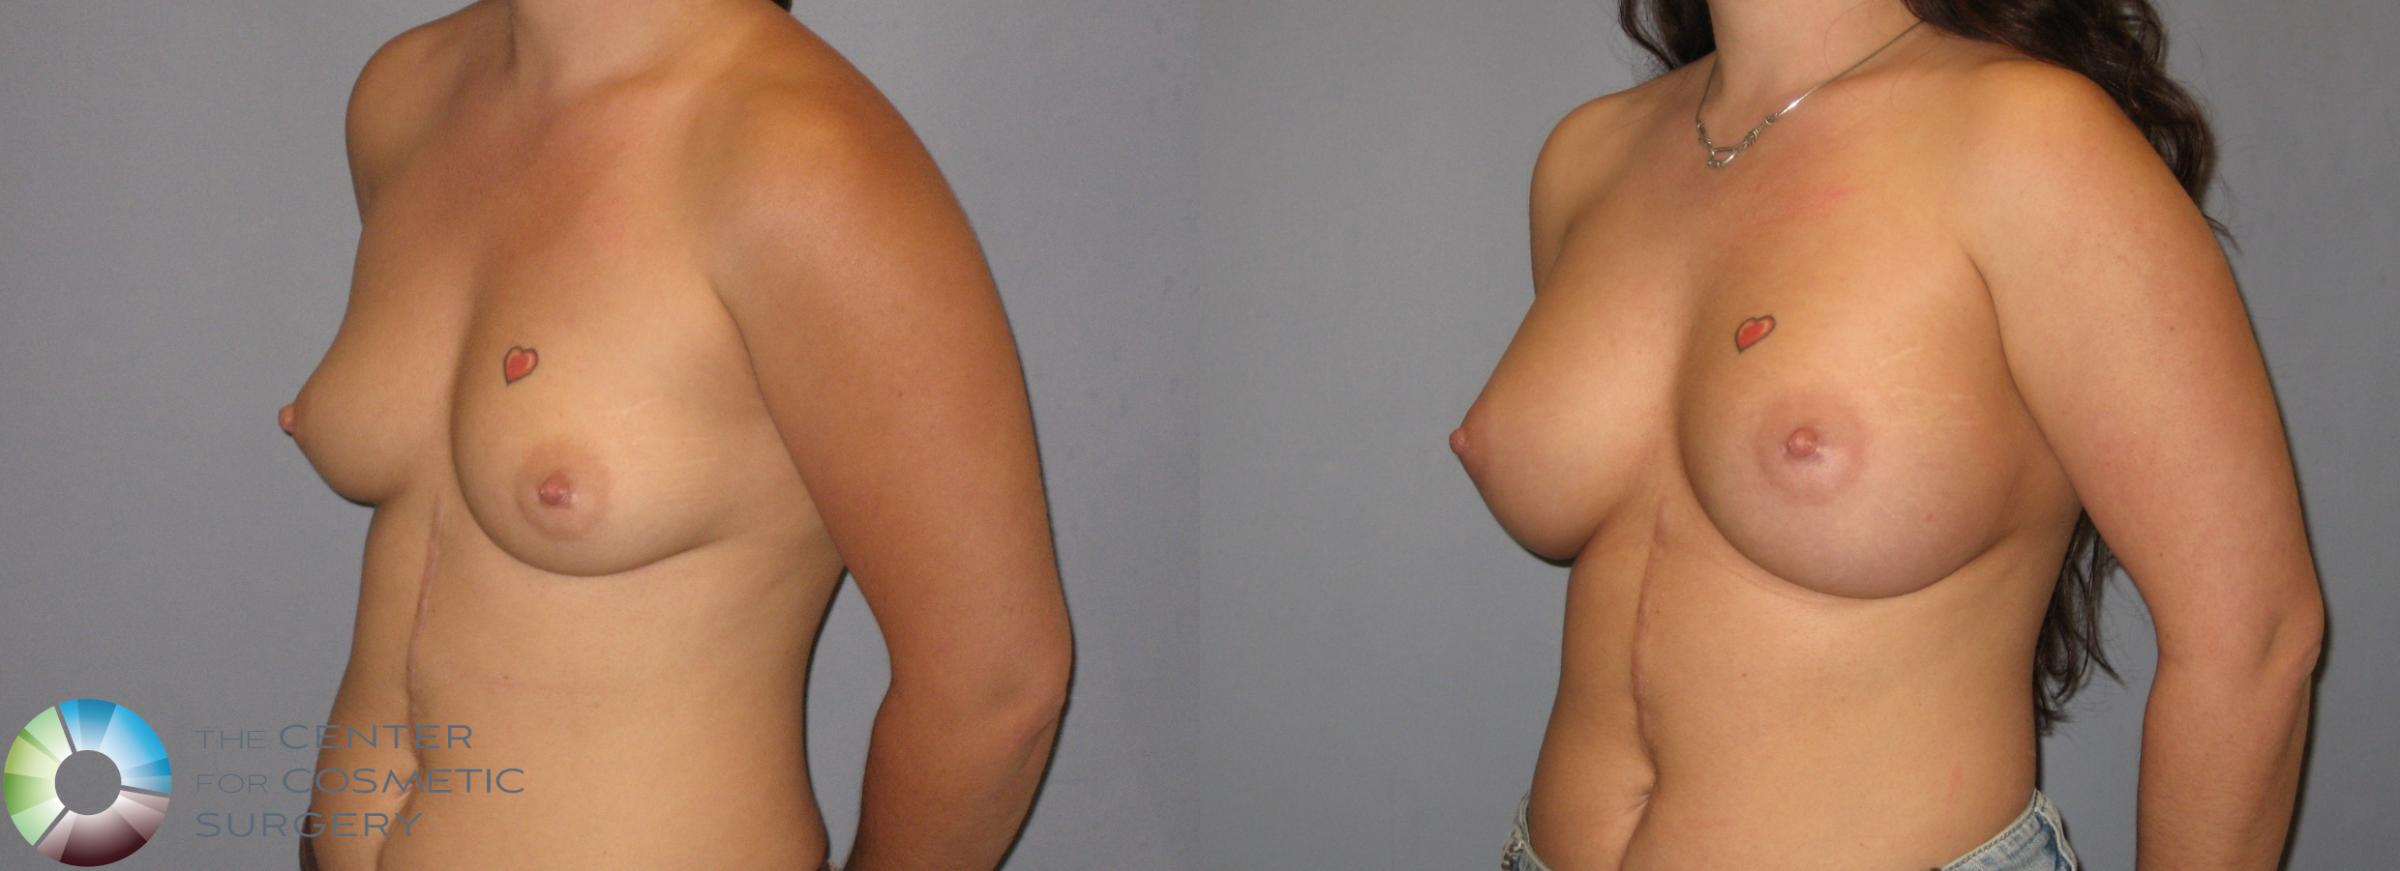 Breast Augmentation Case 183 Before & After View #1 | Golden, CO | The Center for Cosmetic Surgery